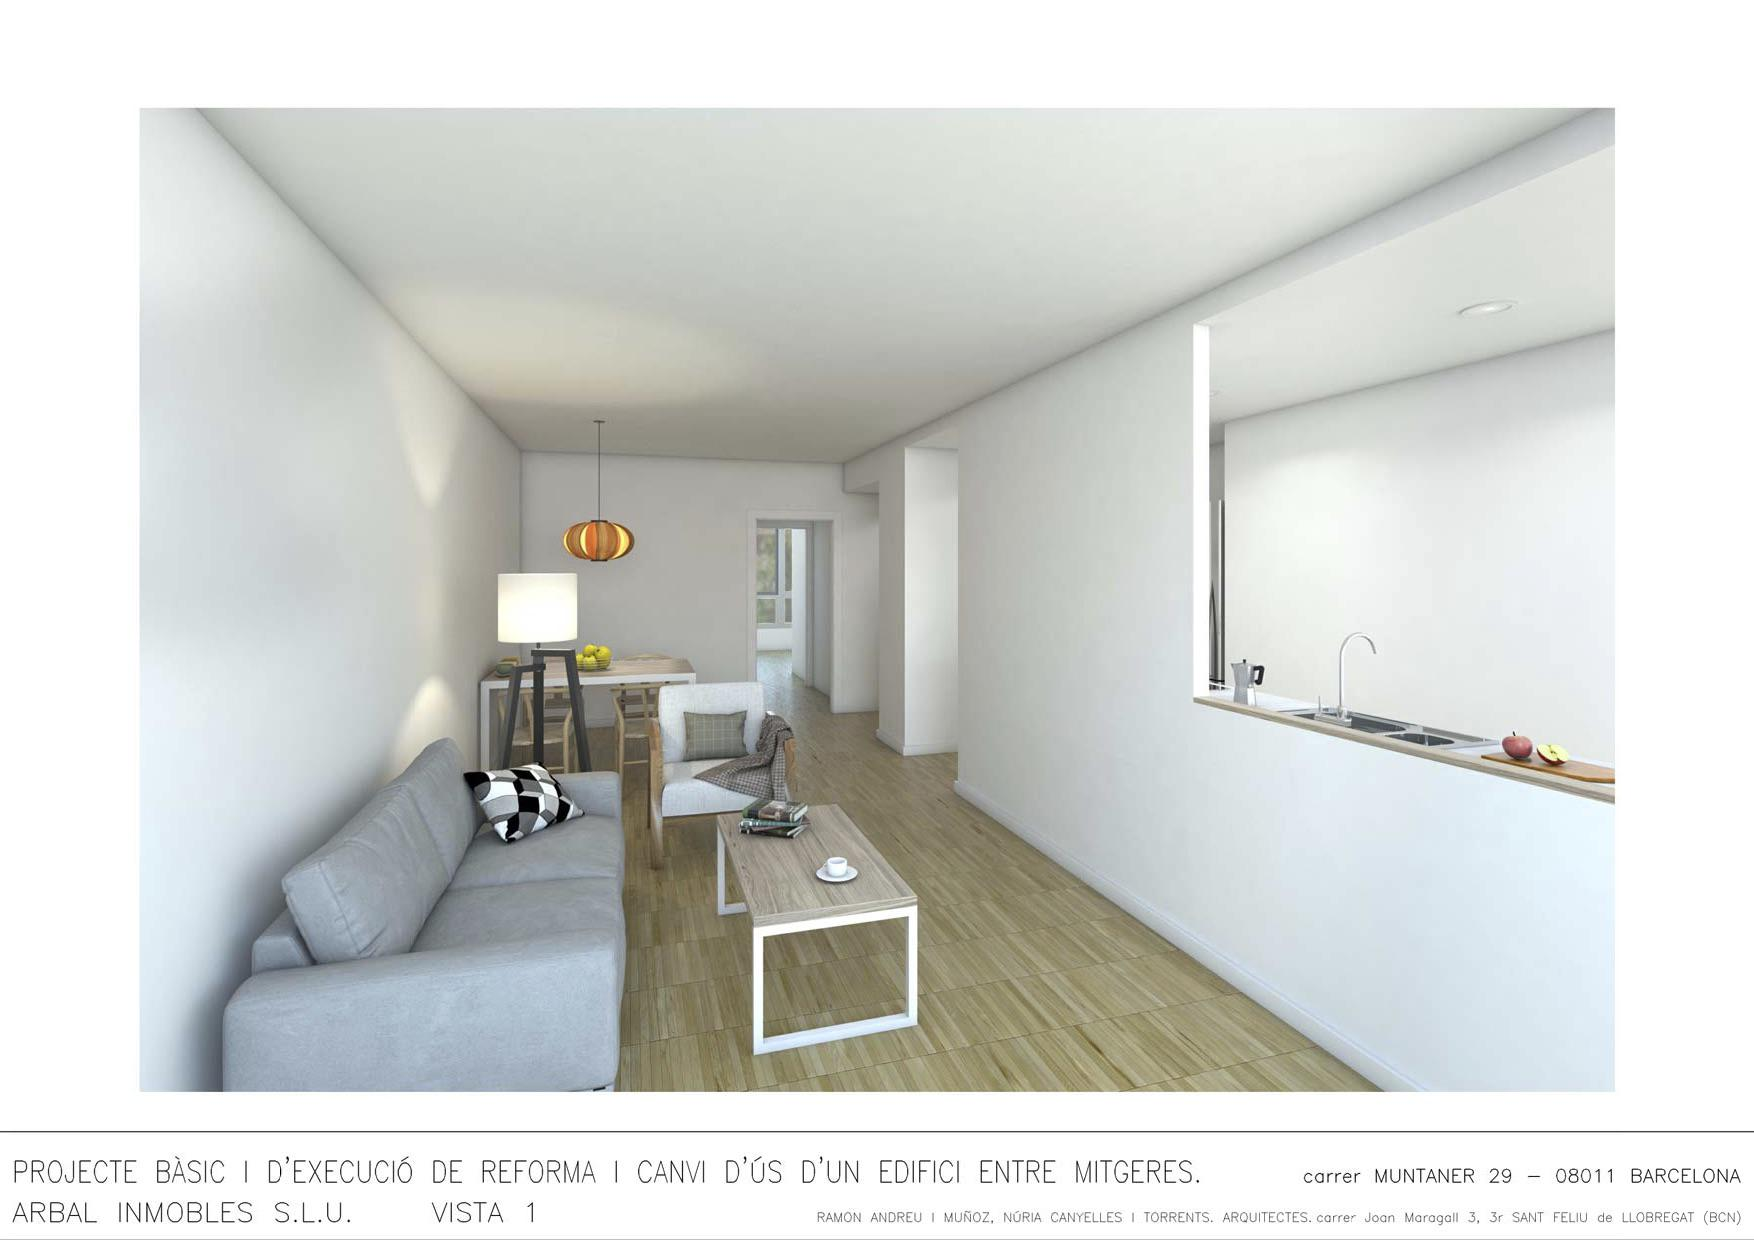 232426 Apartment for sale in Eixample, Old Left Eixample 2